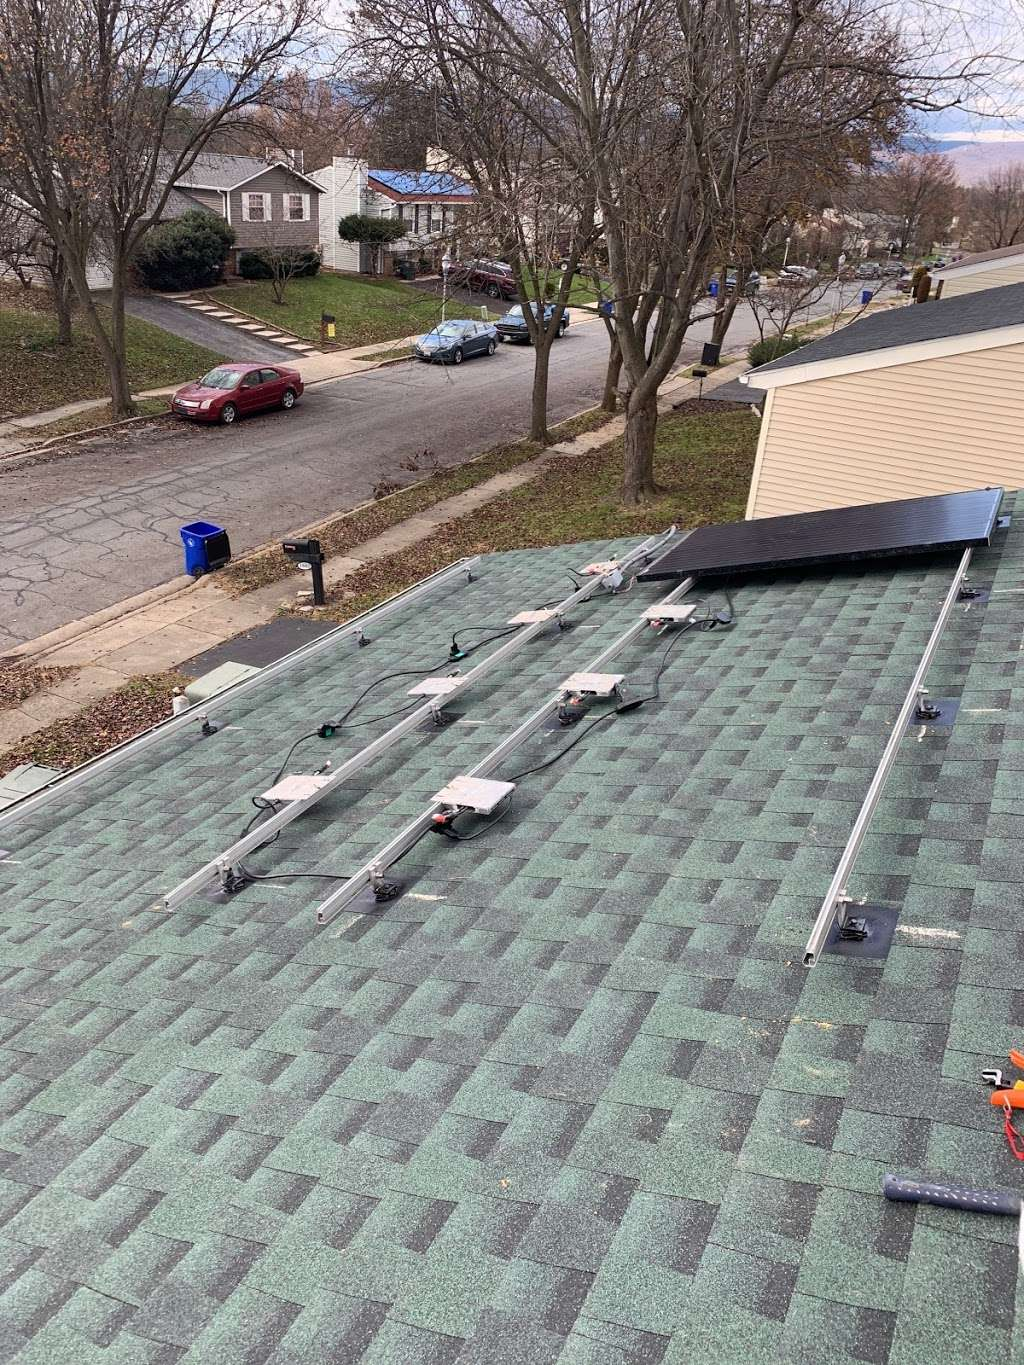 Martellini Property Restoration & Contracting - roofing contractor  | Photo 5 of 6 | Address: 11436 Cronridge Dr Suite E, Owings Mills, MD 21117, USA | Phone: (443) 440-6540